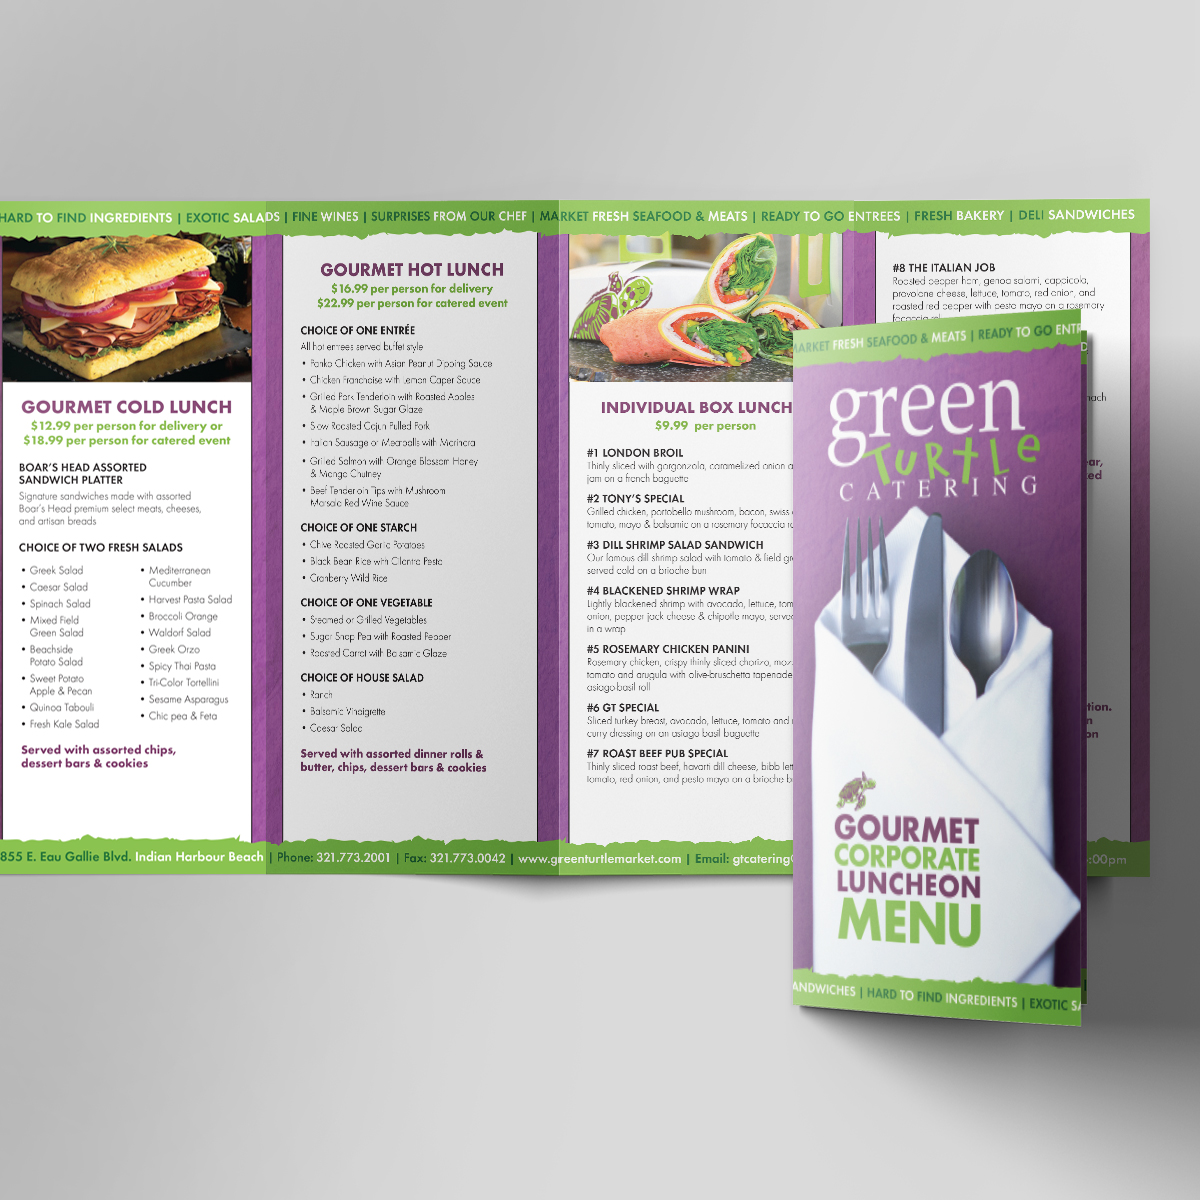 green turtle catering corporate